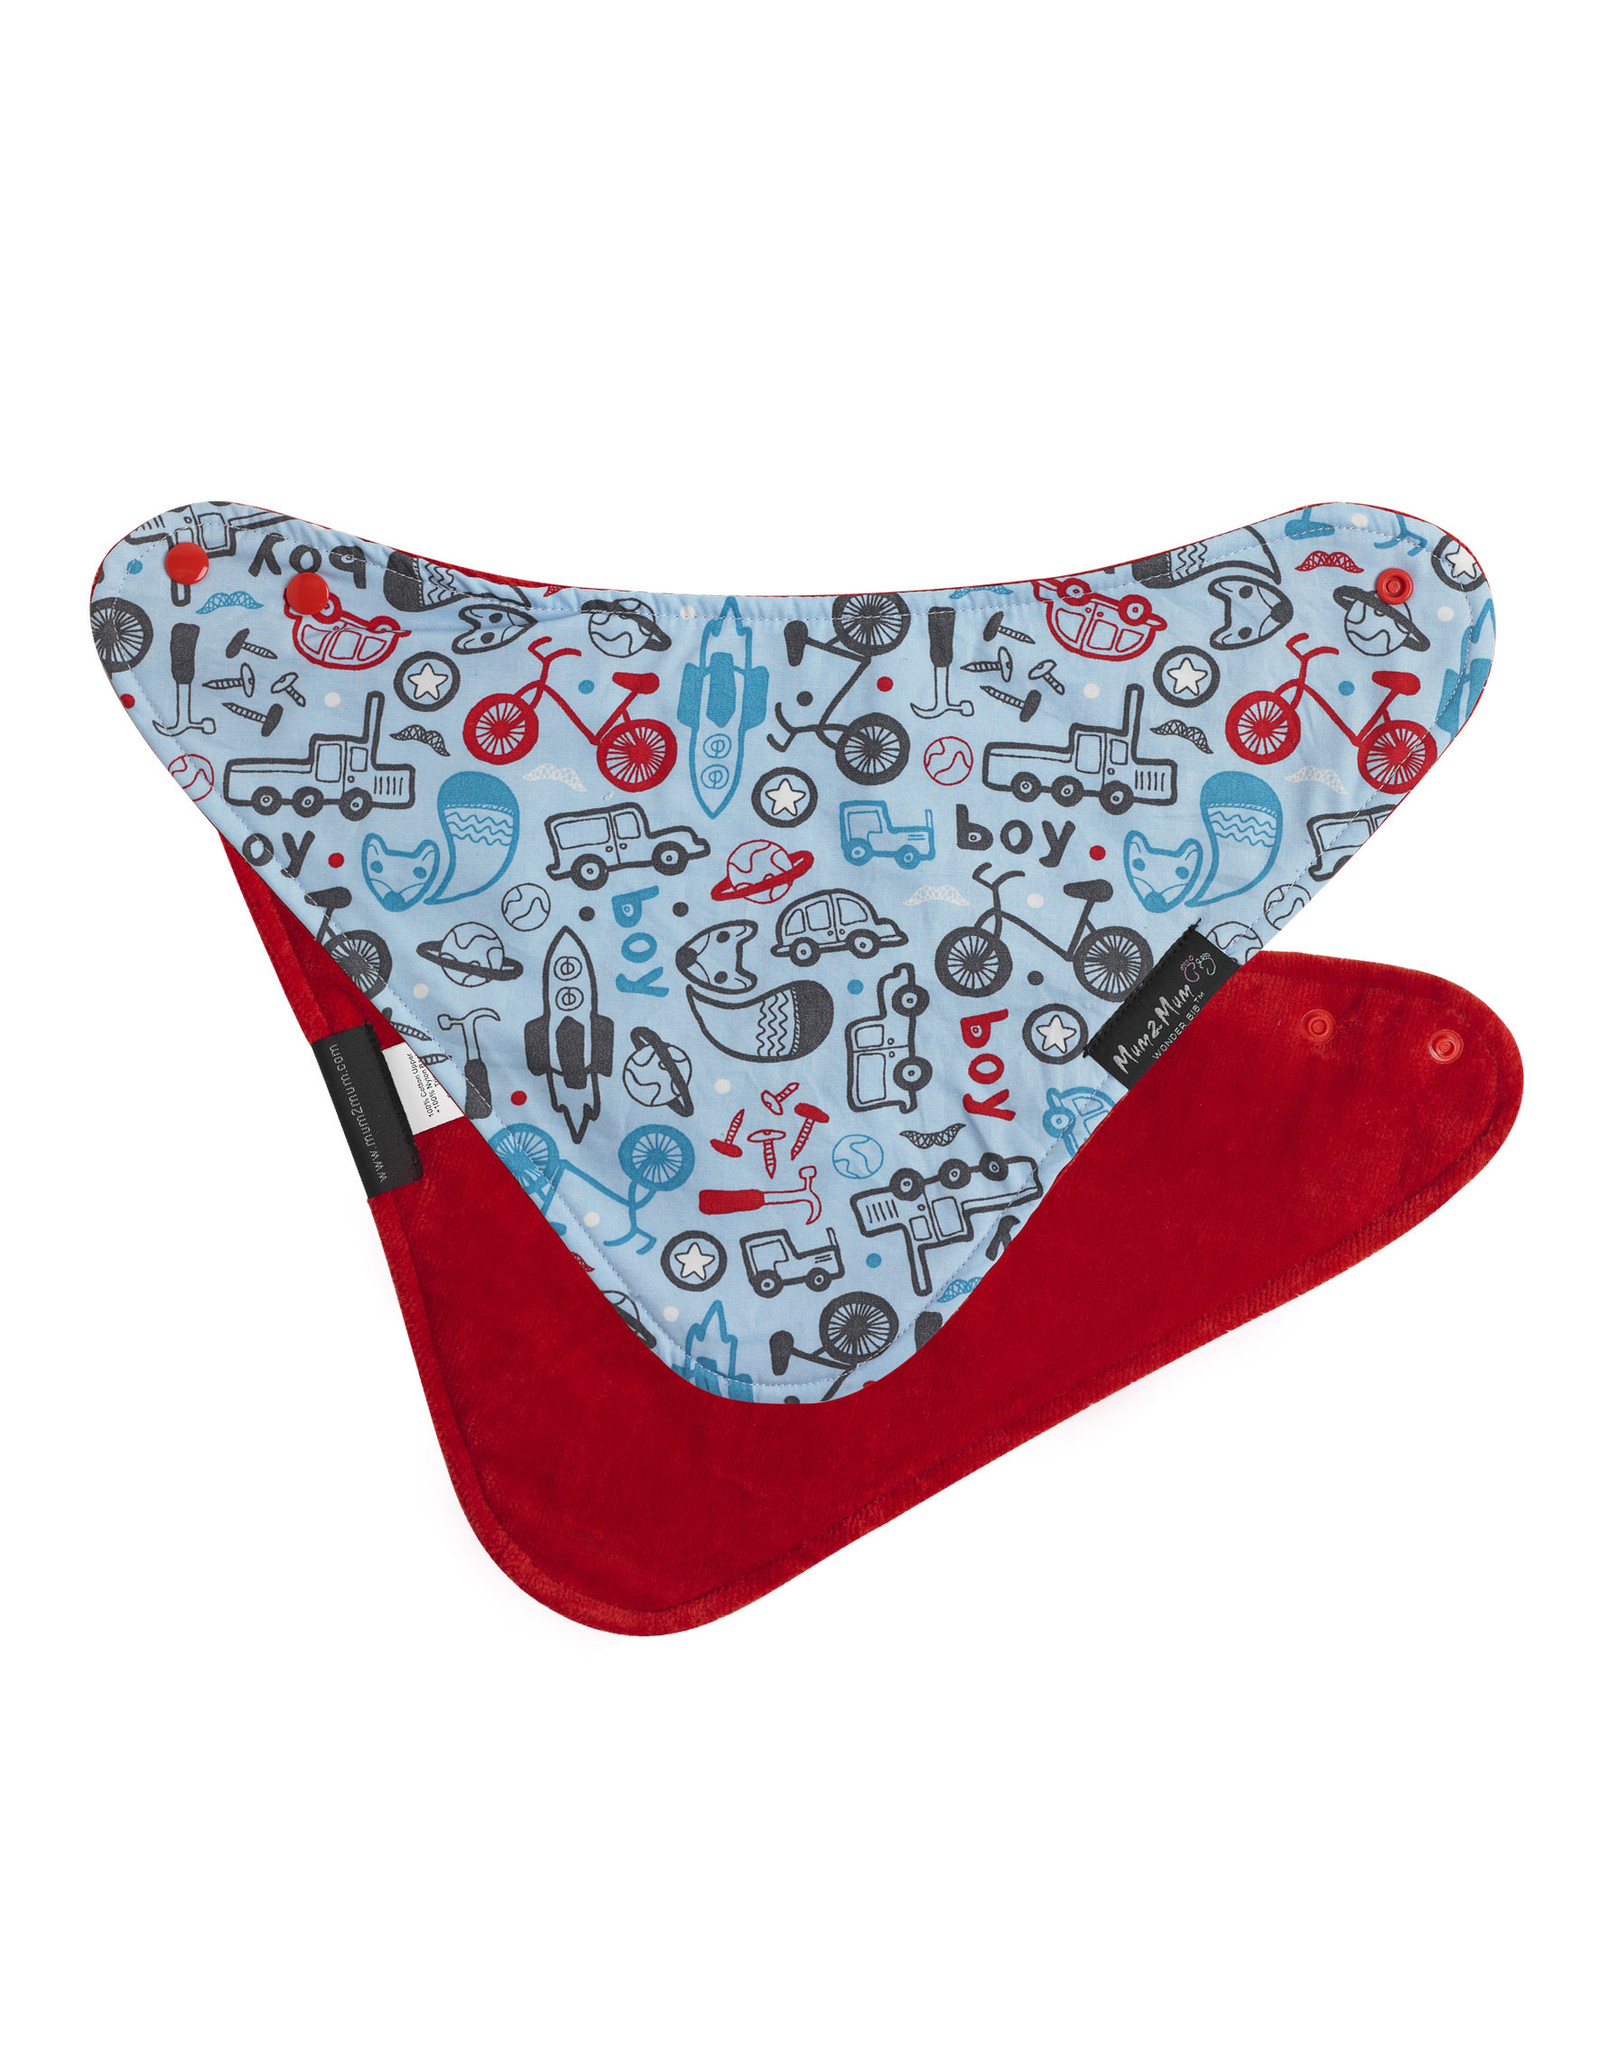 Mum2Mum Mum2Mum Fashion Bib Boy Print Red